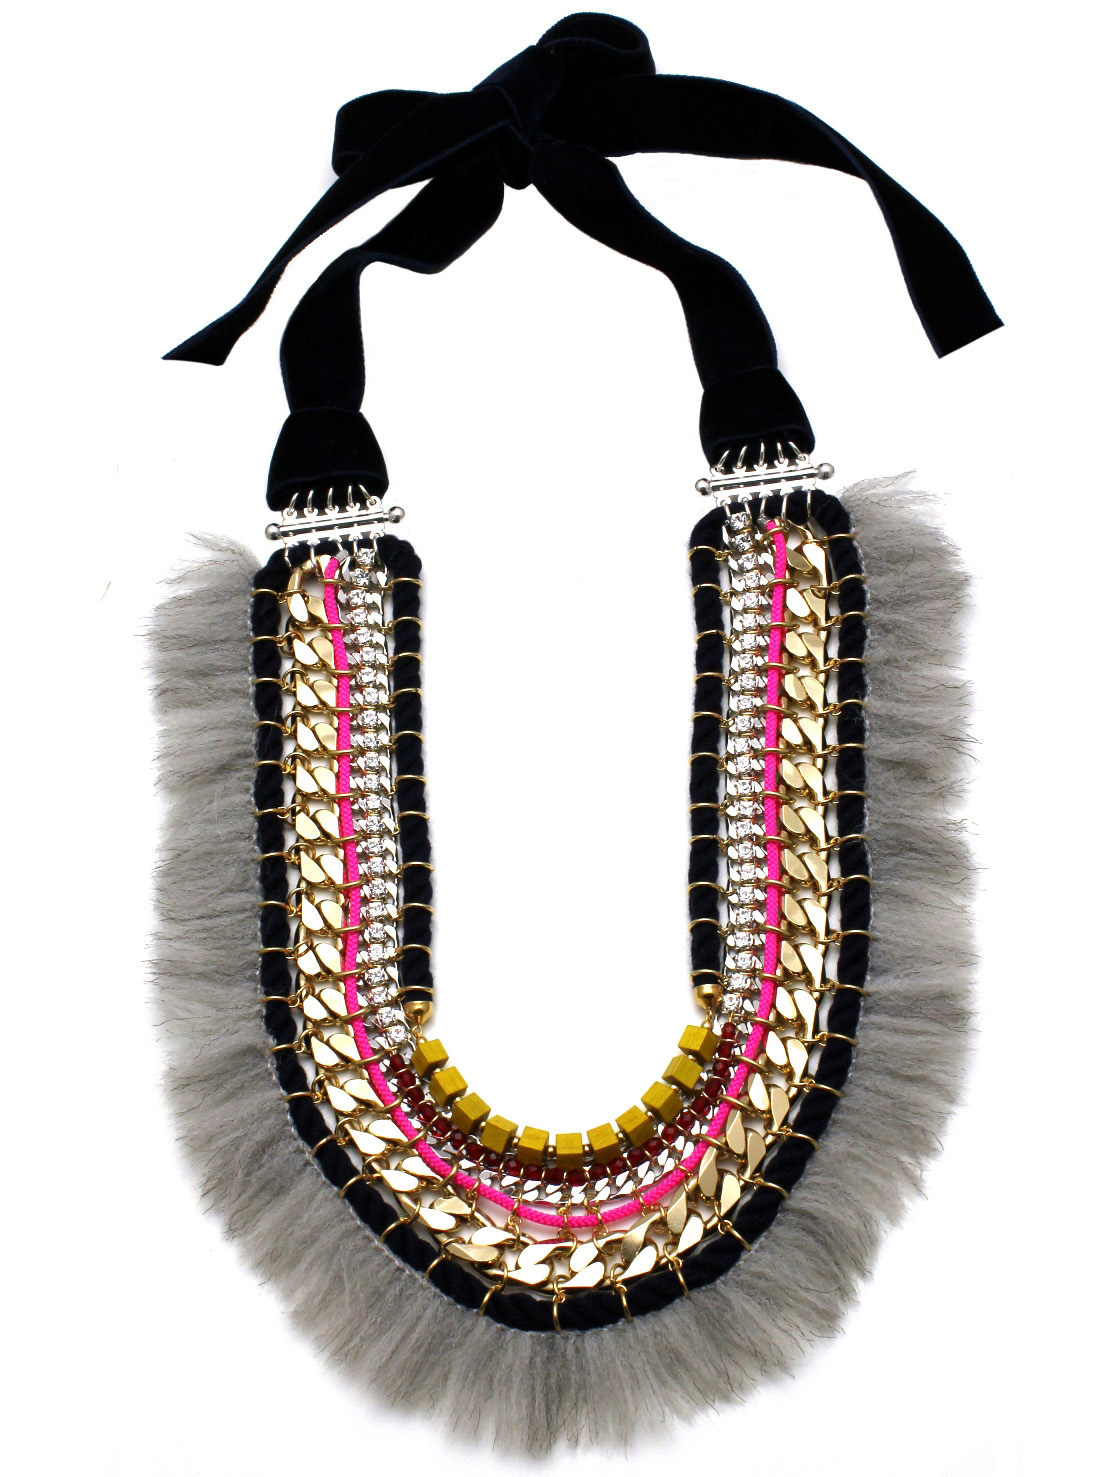 042 - Fur Fringe Necklace.jpg